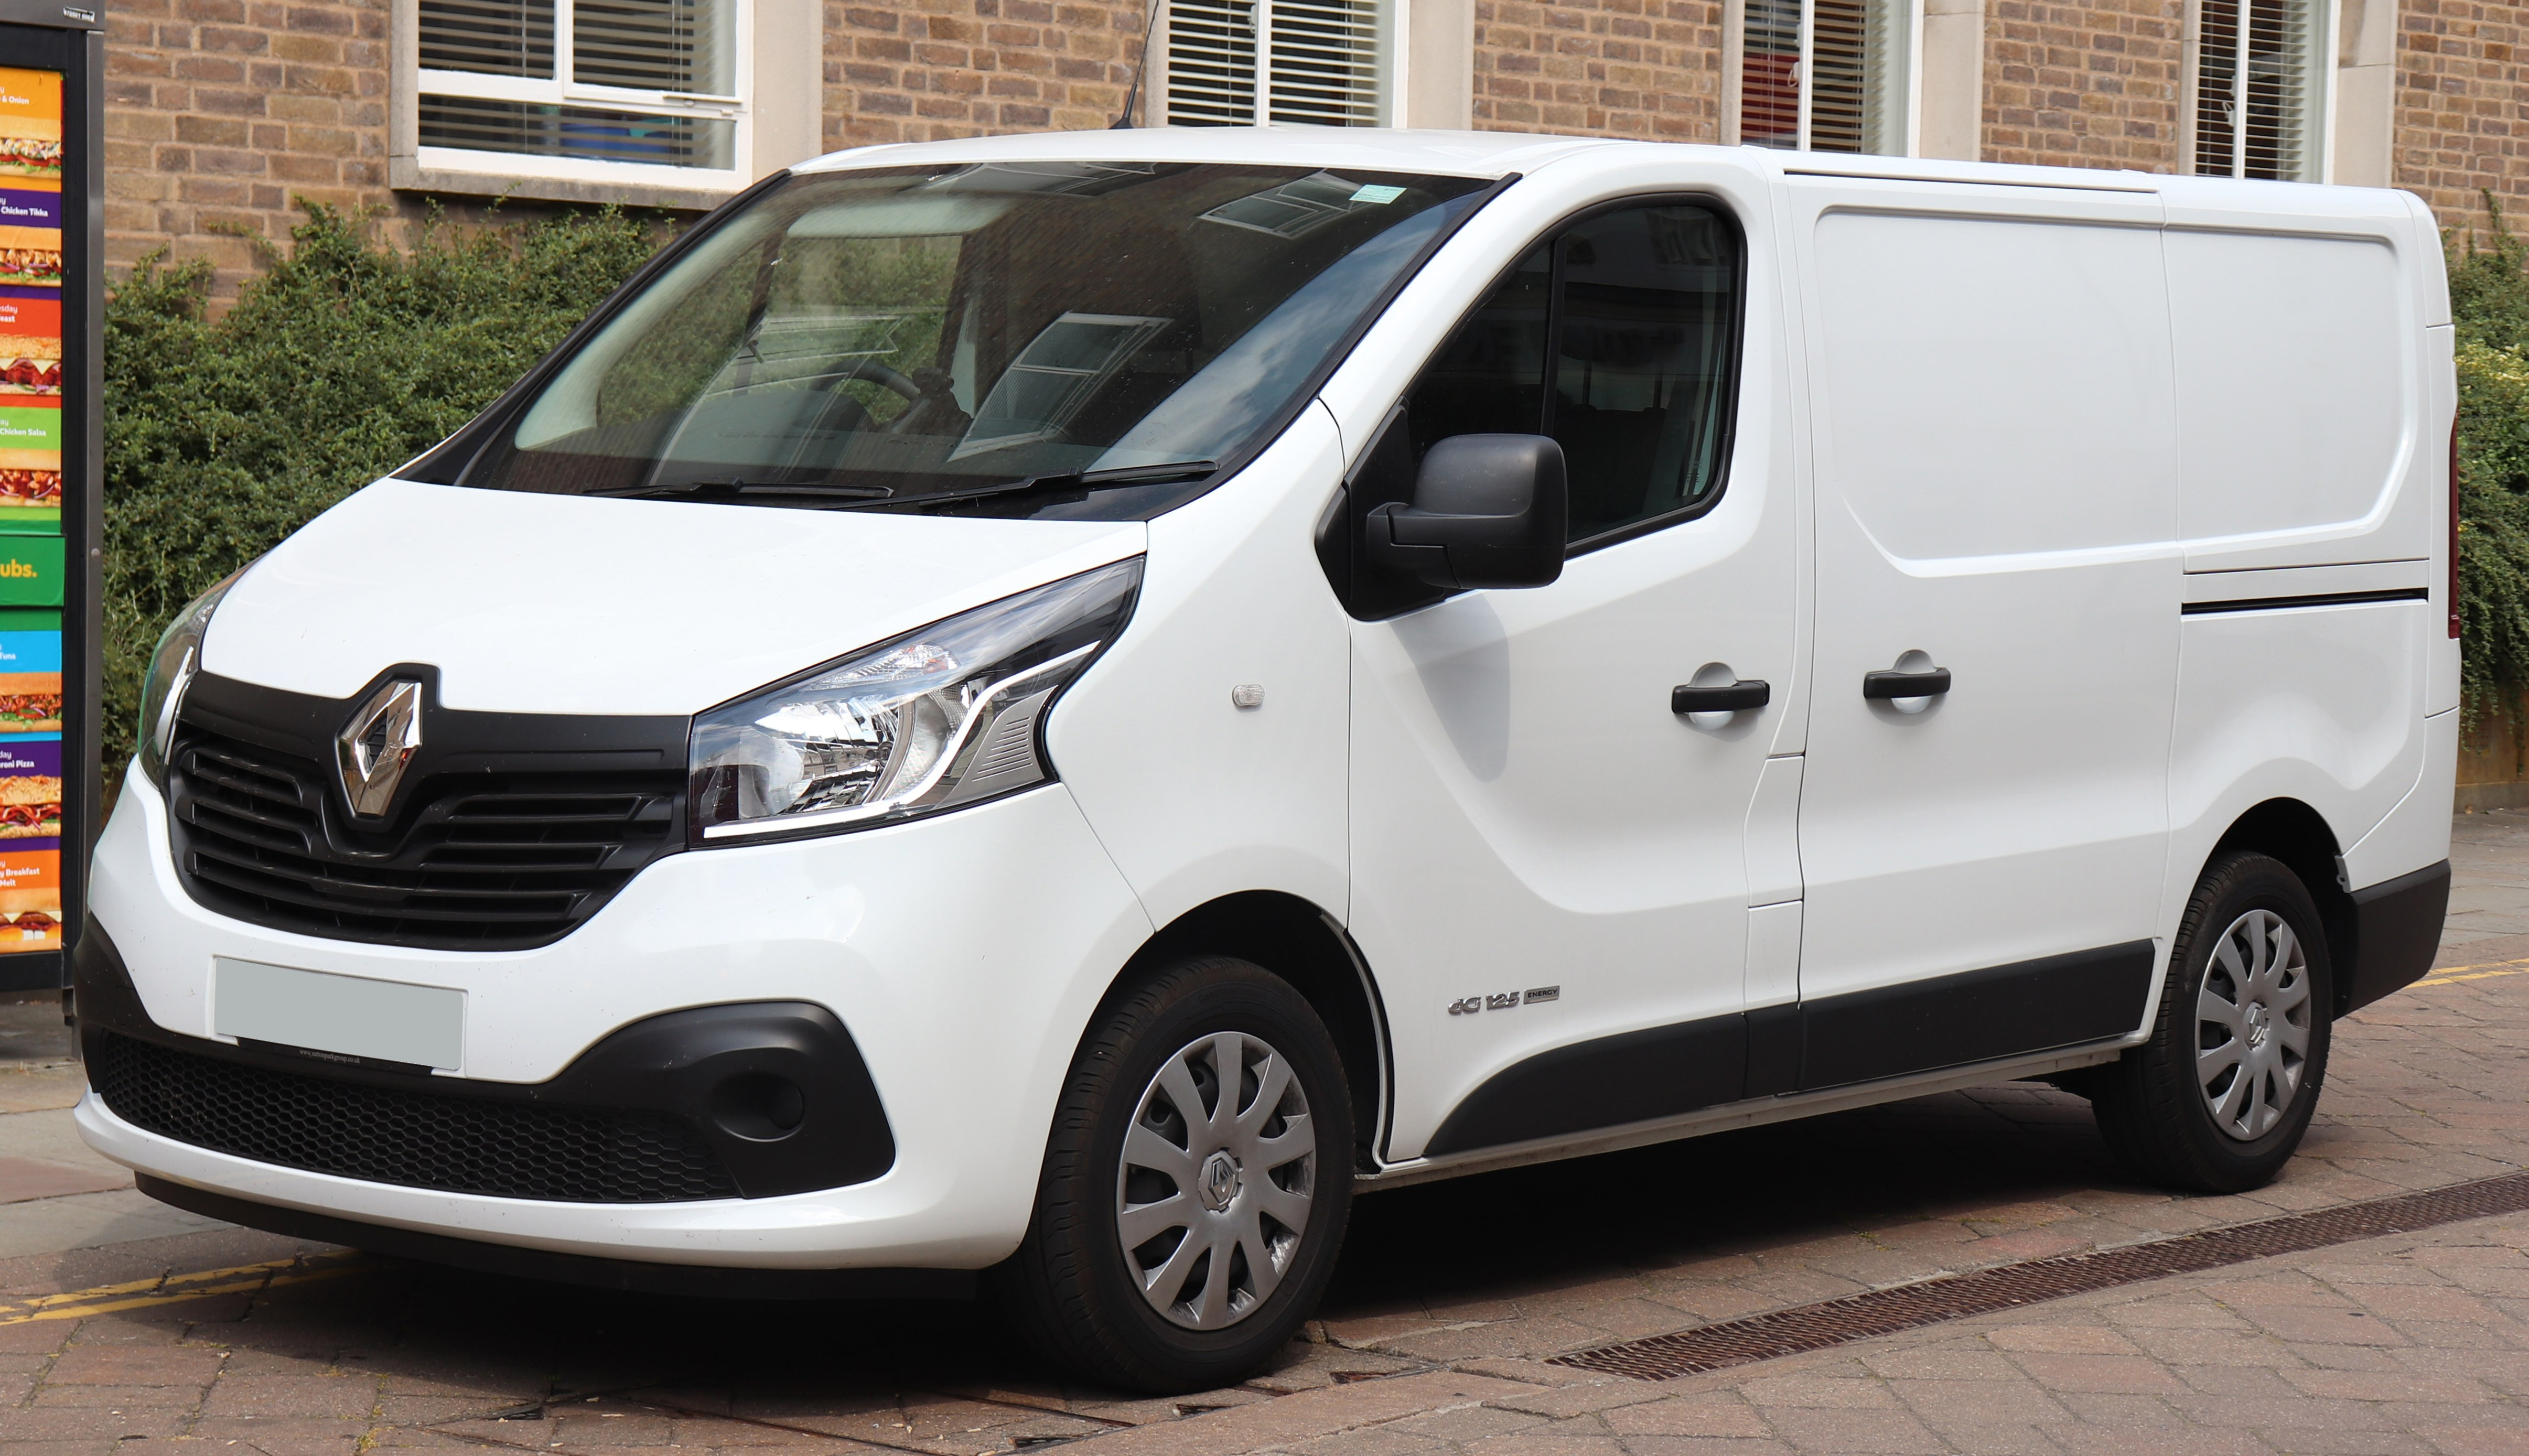 Renault Trafic - The complete information and online sale